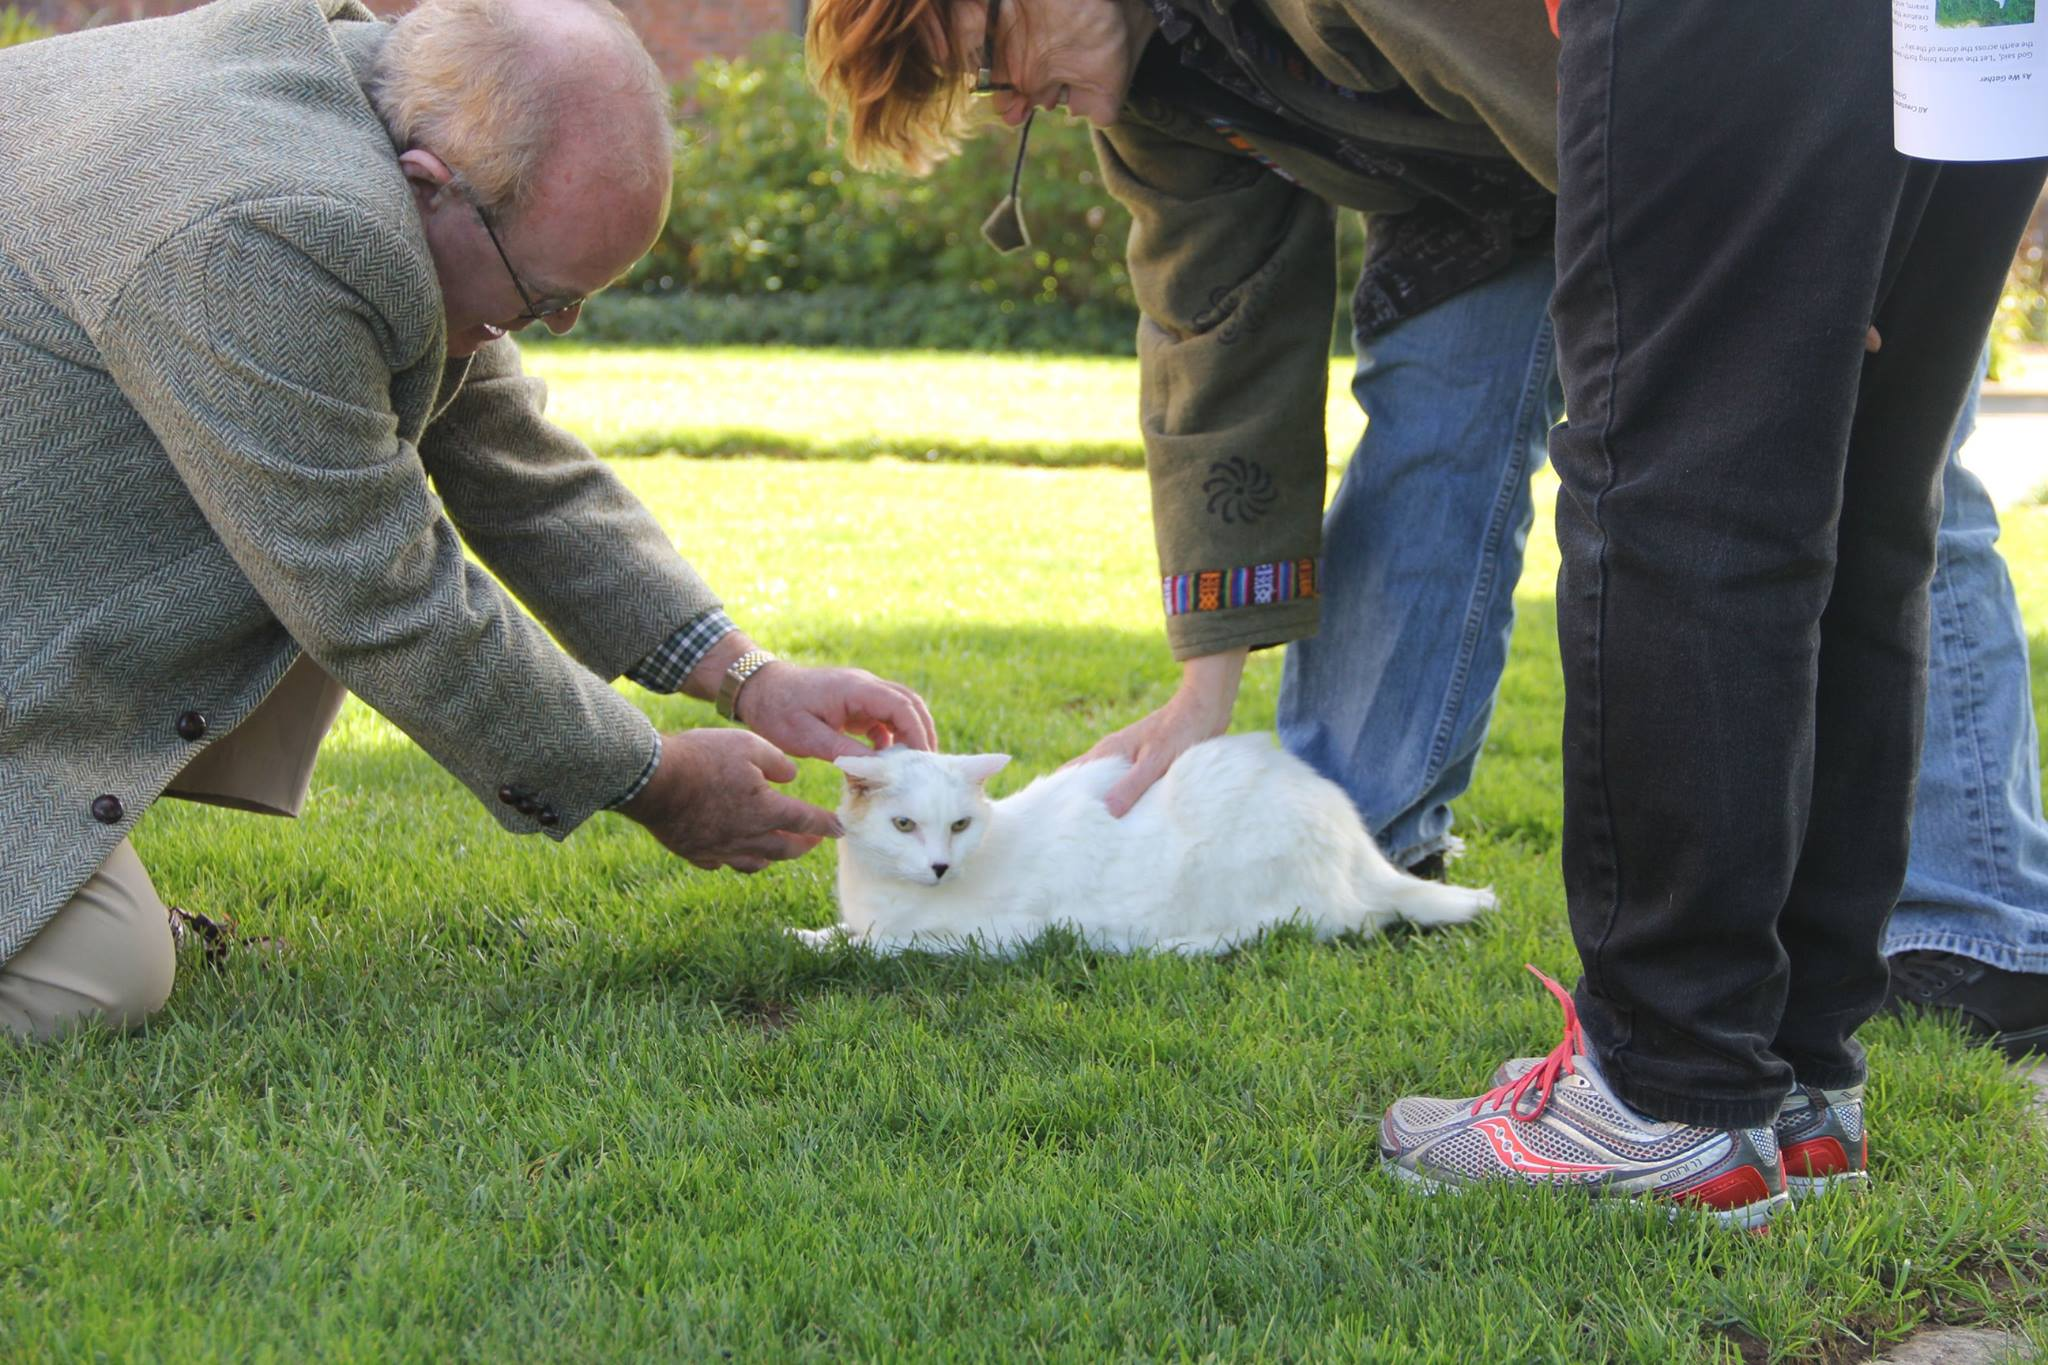 Rev. Geordie Campbell blesses a pet kitty during the 2015 Blessing of the Animals at First Church, West Hartford. Photo credit: Amy Melvin